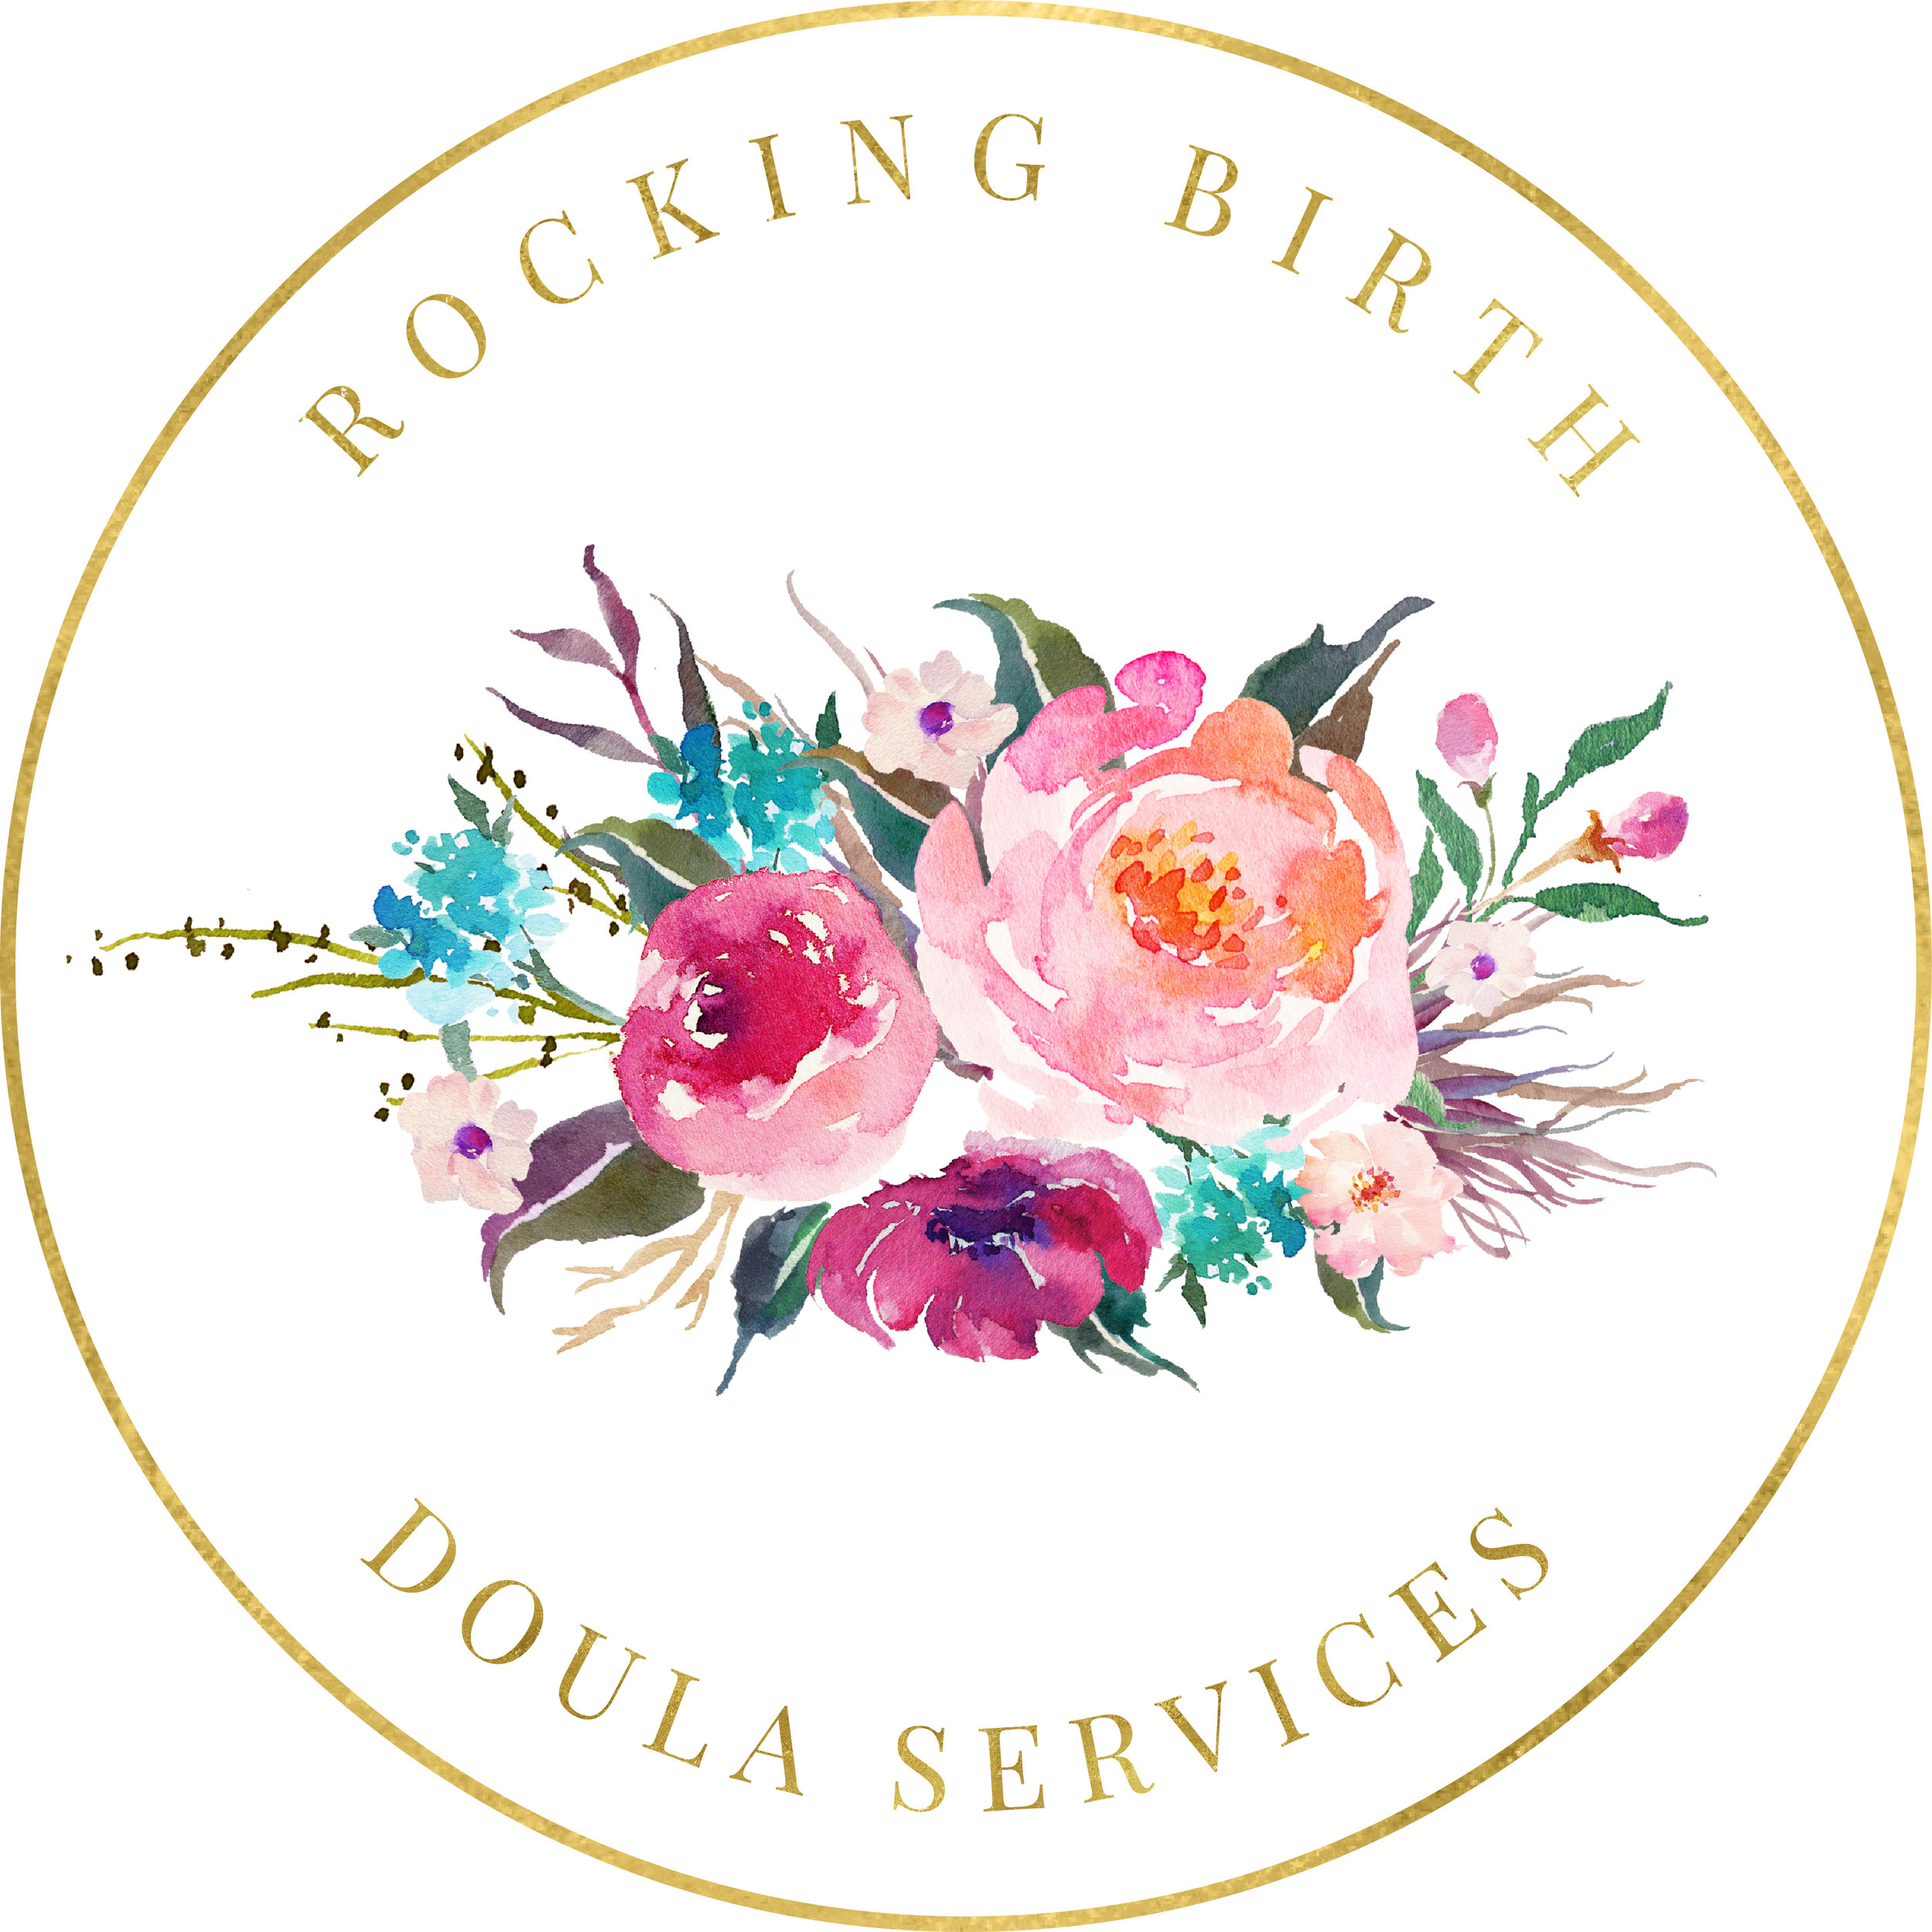 Rocking Birth Doula Services